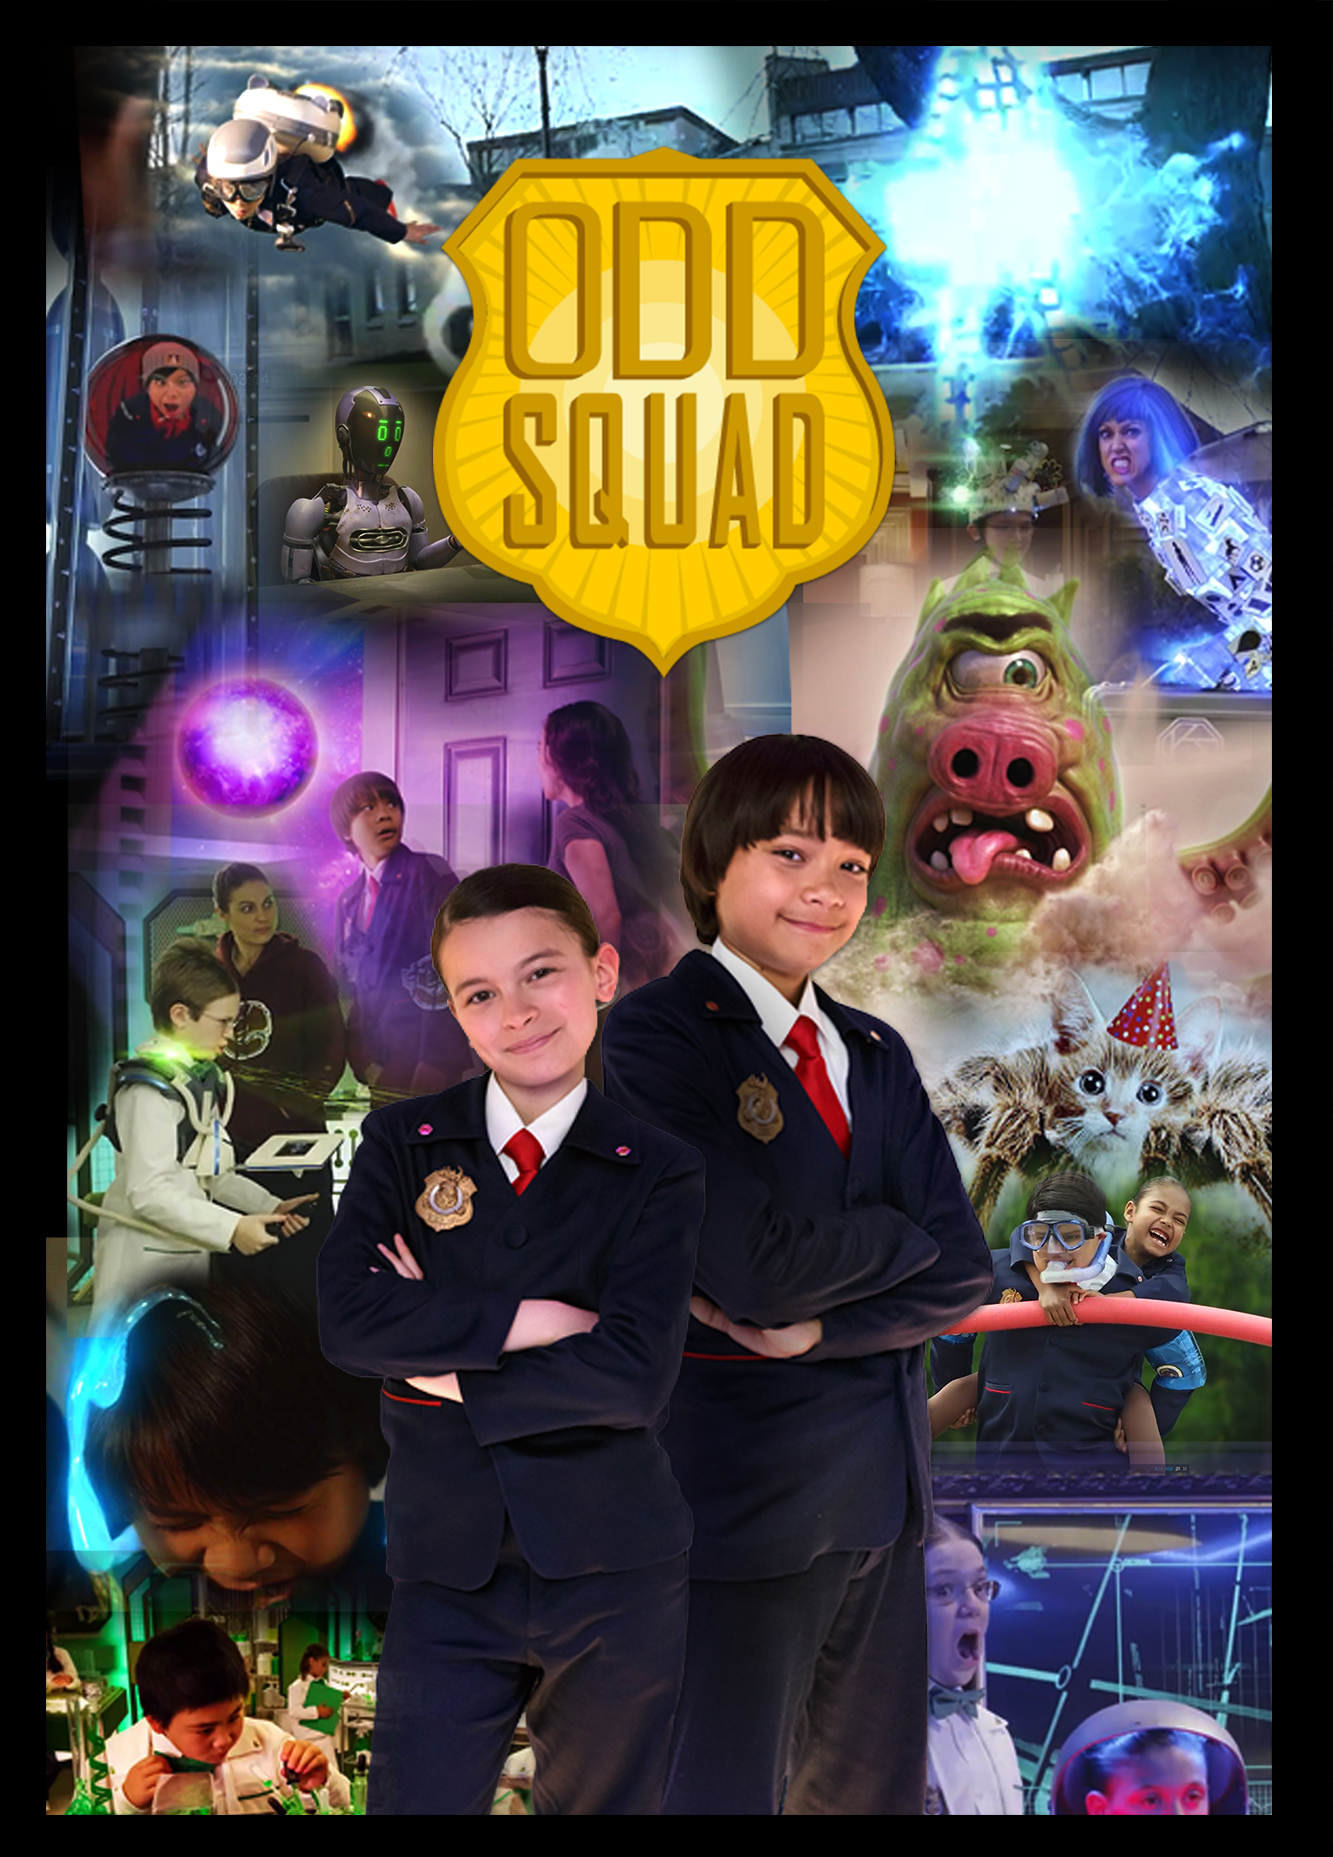 About Odd Squad